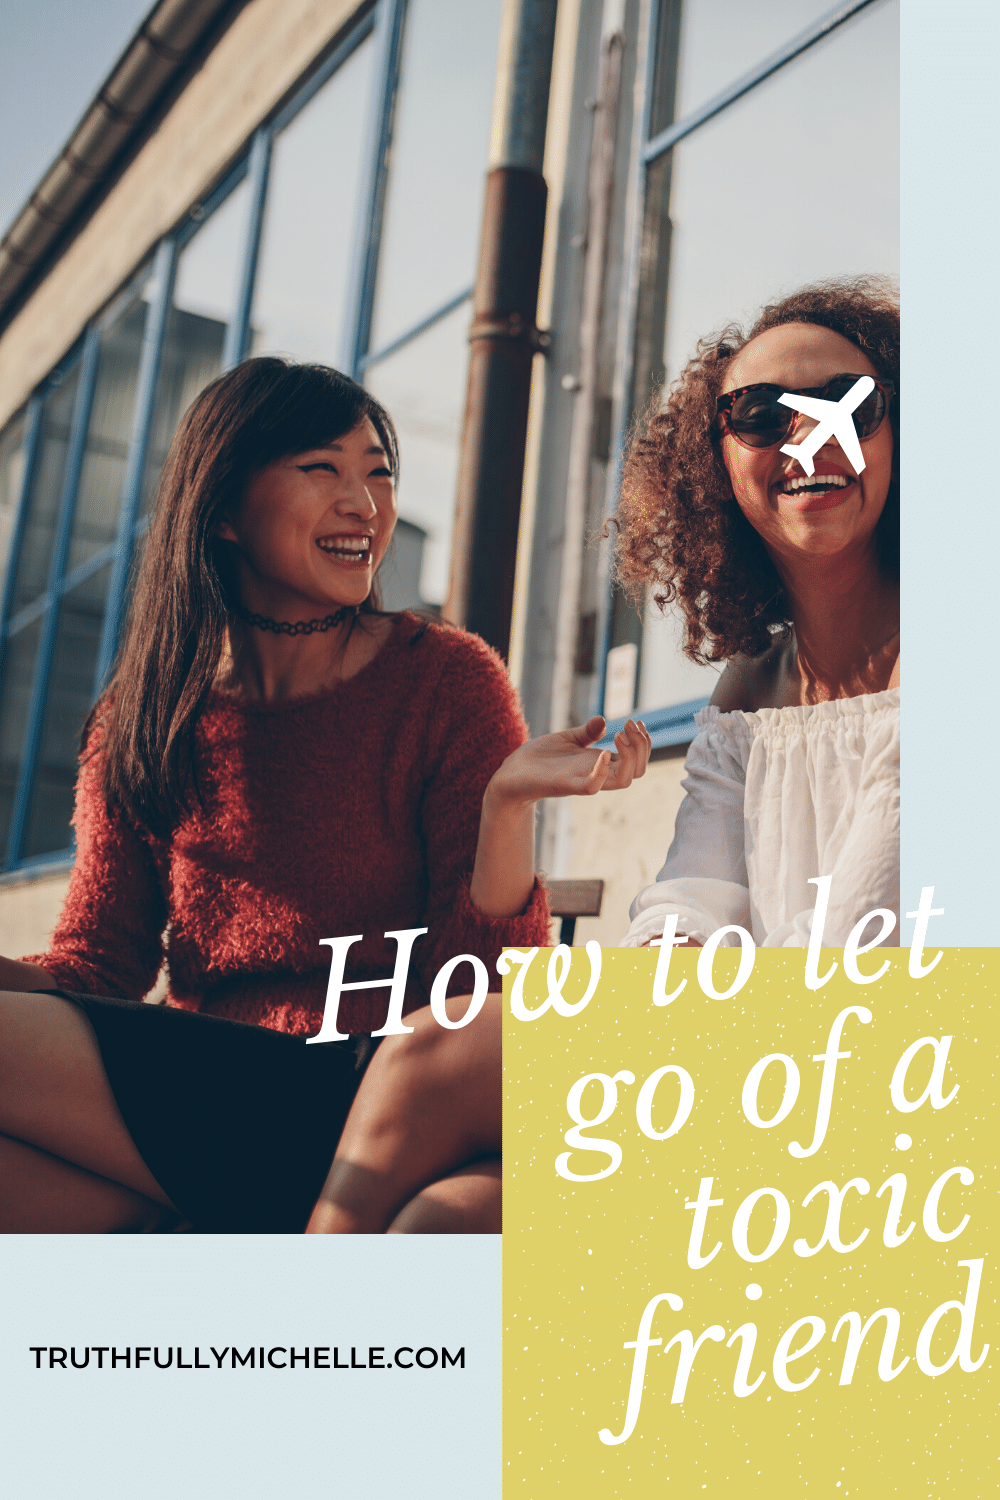 when to let go of a friendship, when it's time to let go of a friendship, signs its time to let go of a friendship, how to know when to let go of a friendship, how to let go of a toxic friendship